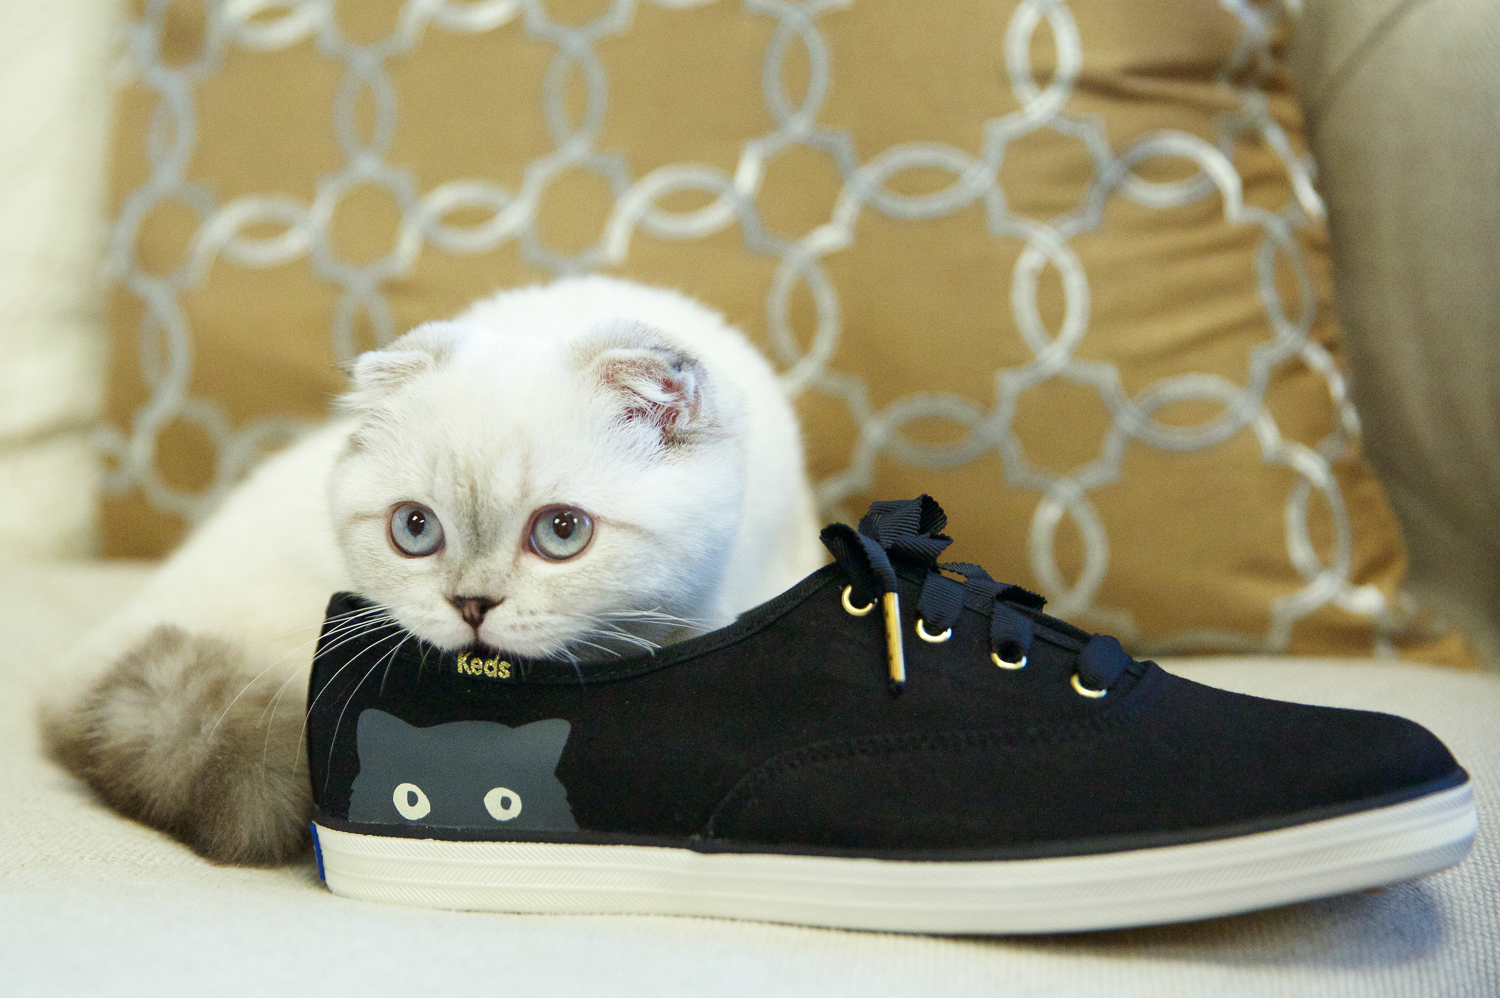 Taylor Swift's cat pictured with Keds shoes